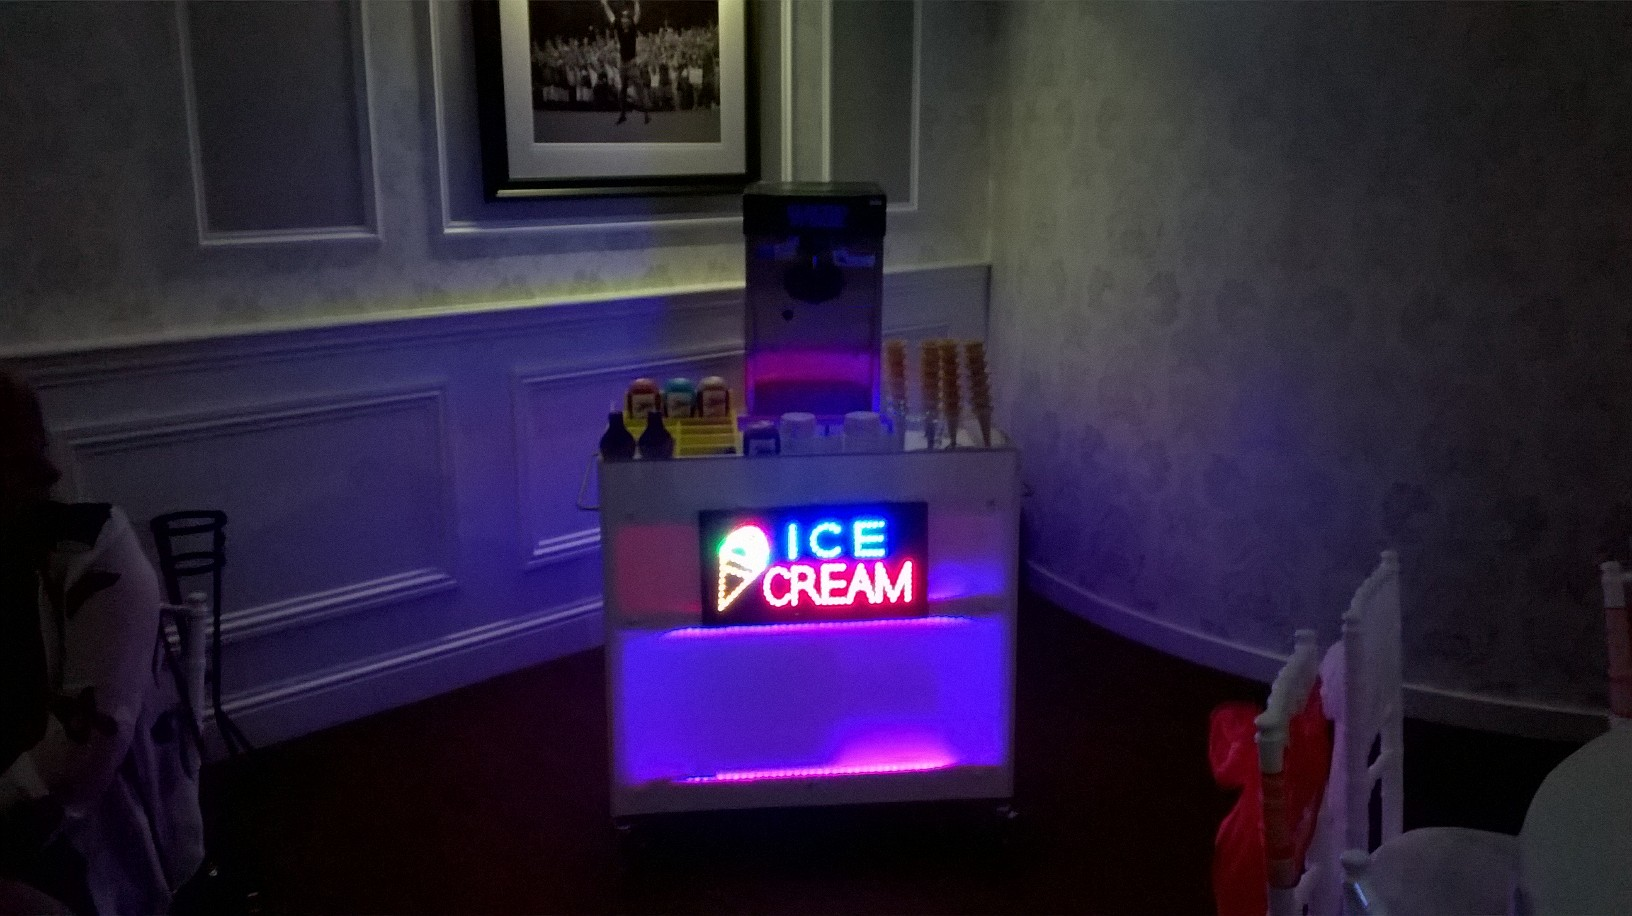 LED Ice-cream bar